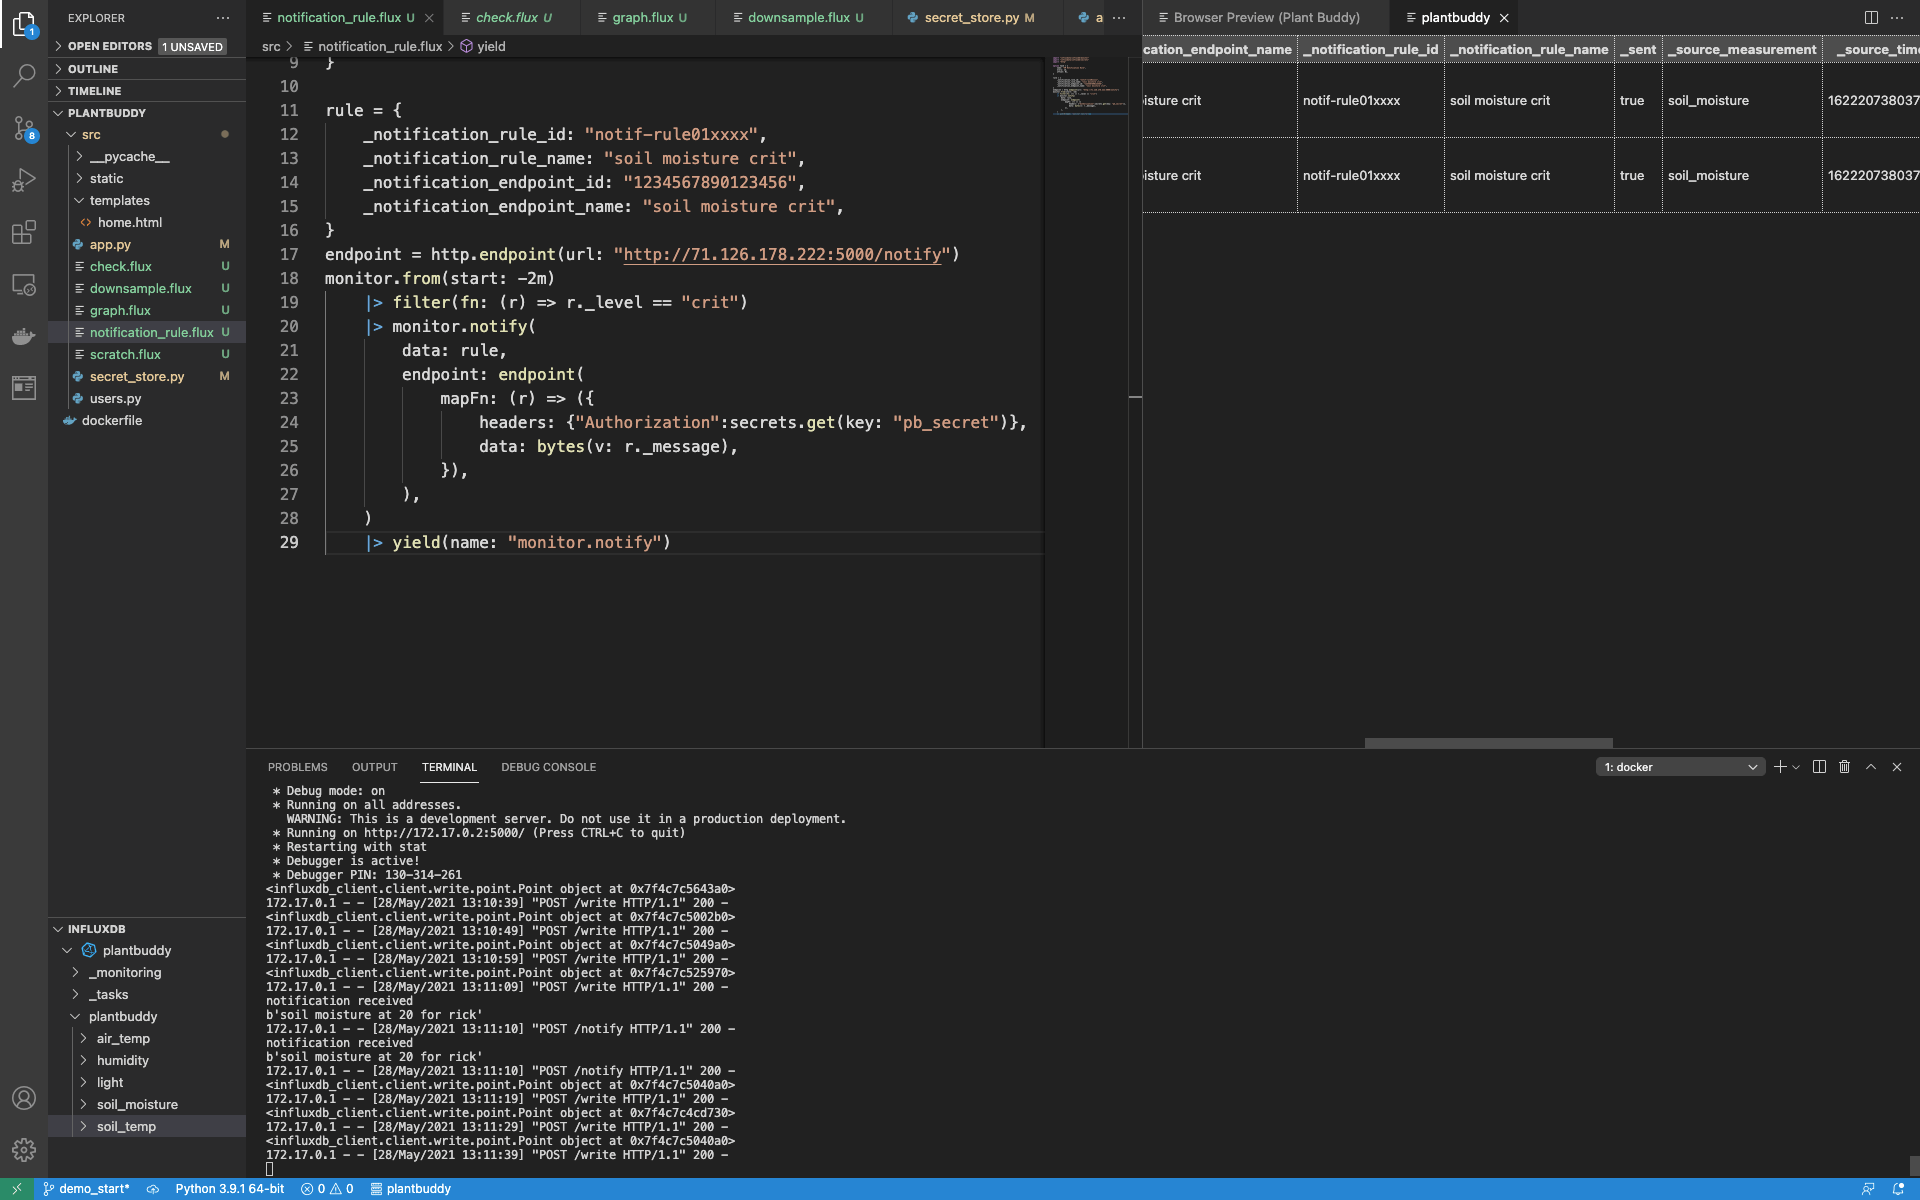 full contents of notification_rule